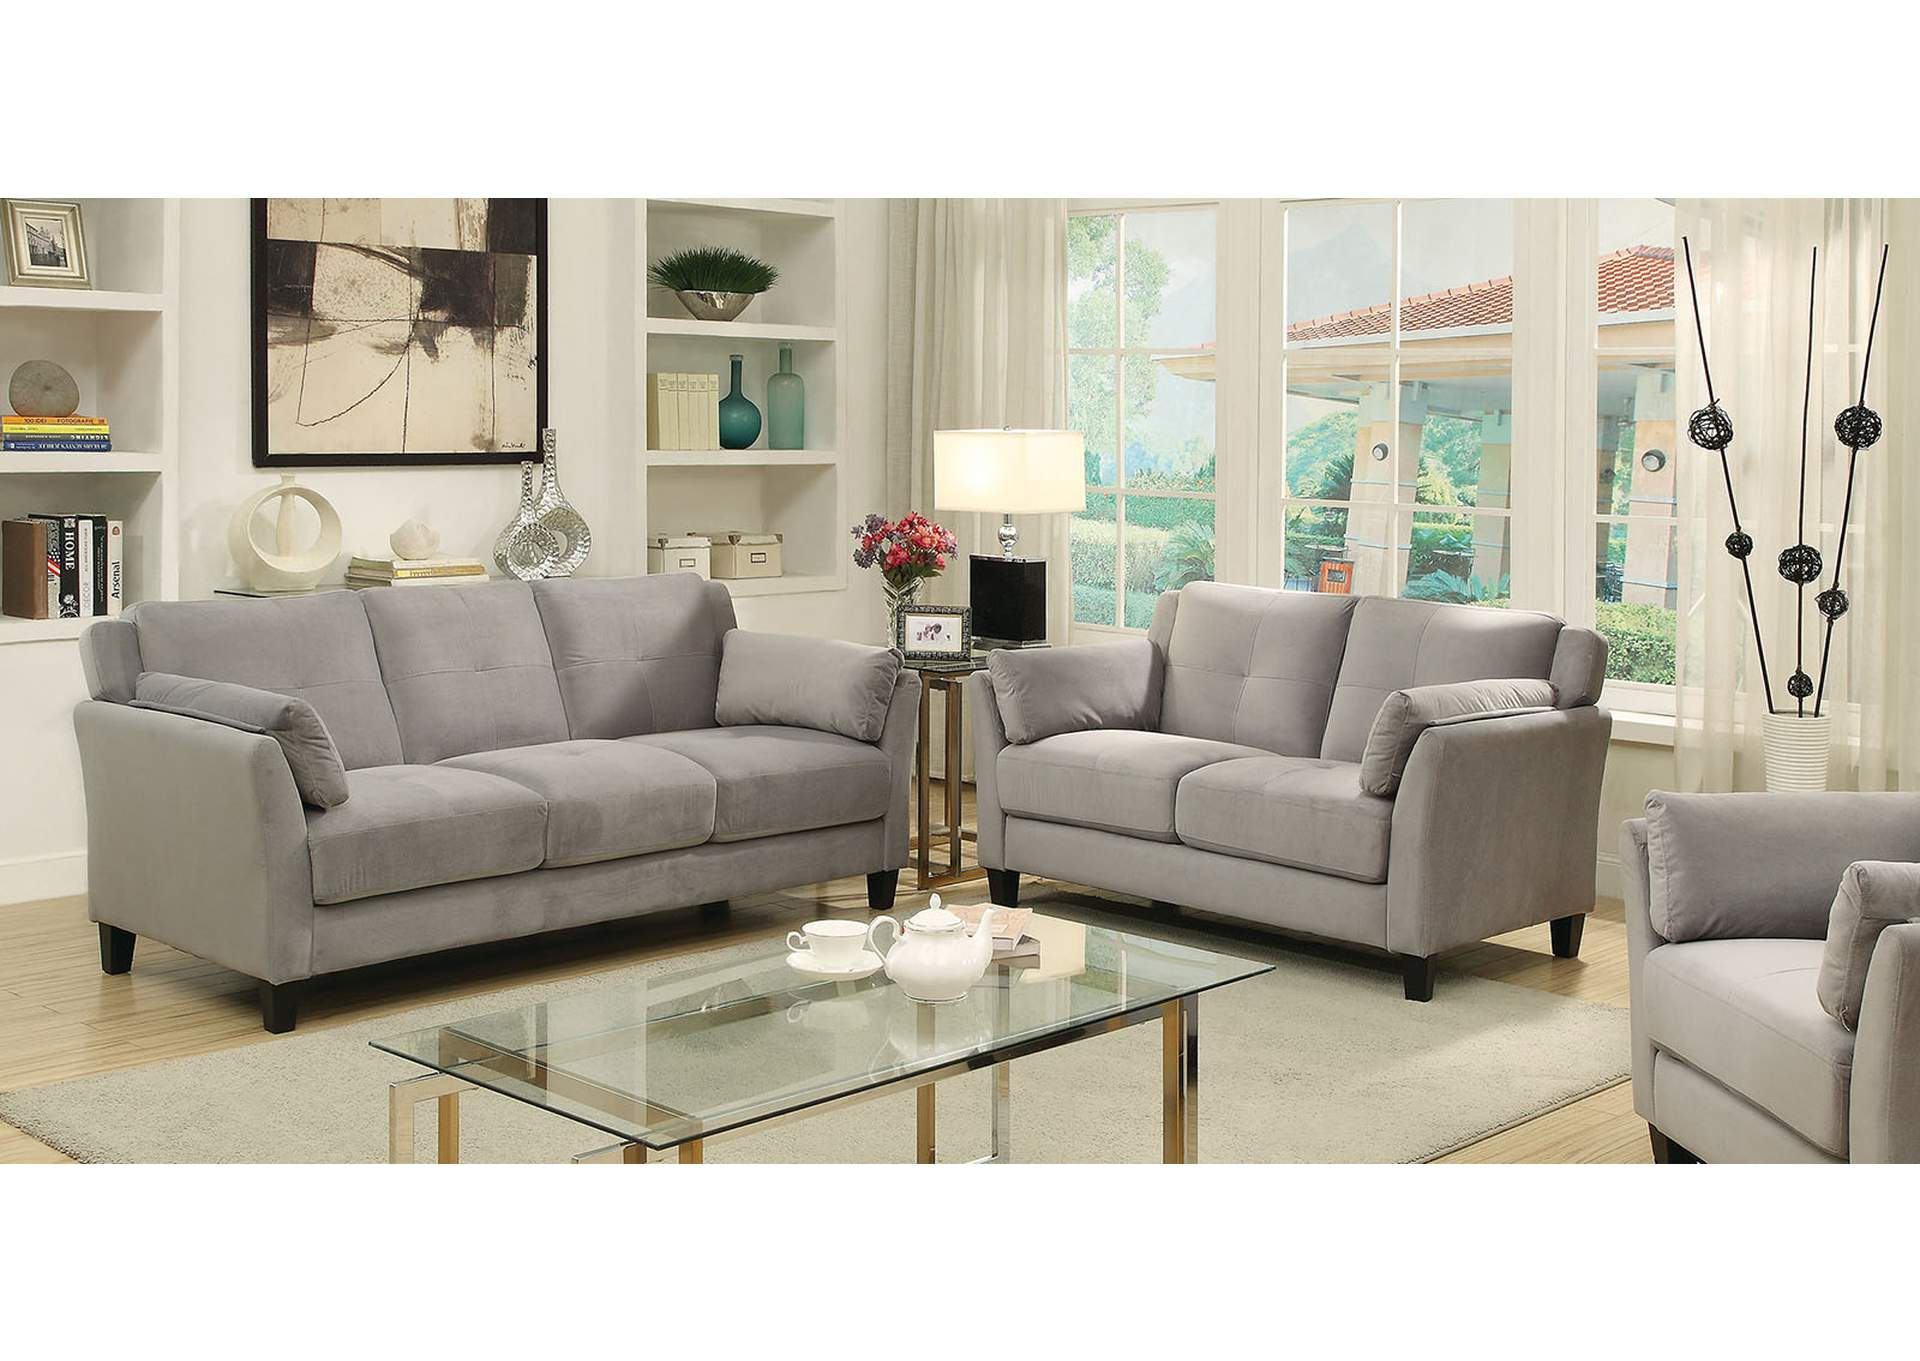 Best Buy Furniture and Mattress Ysabel Warm Gray Sofa and ...